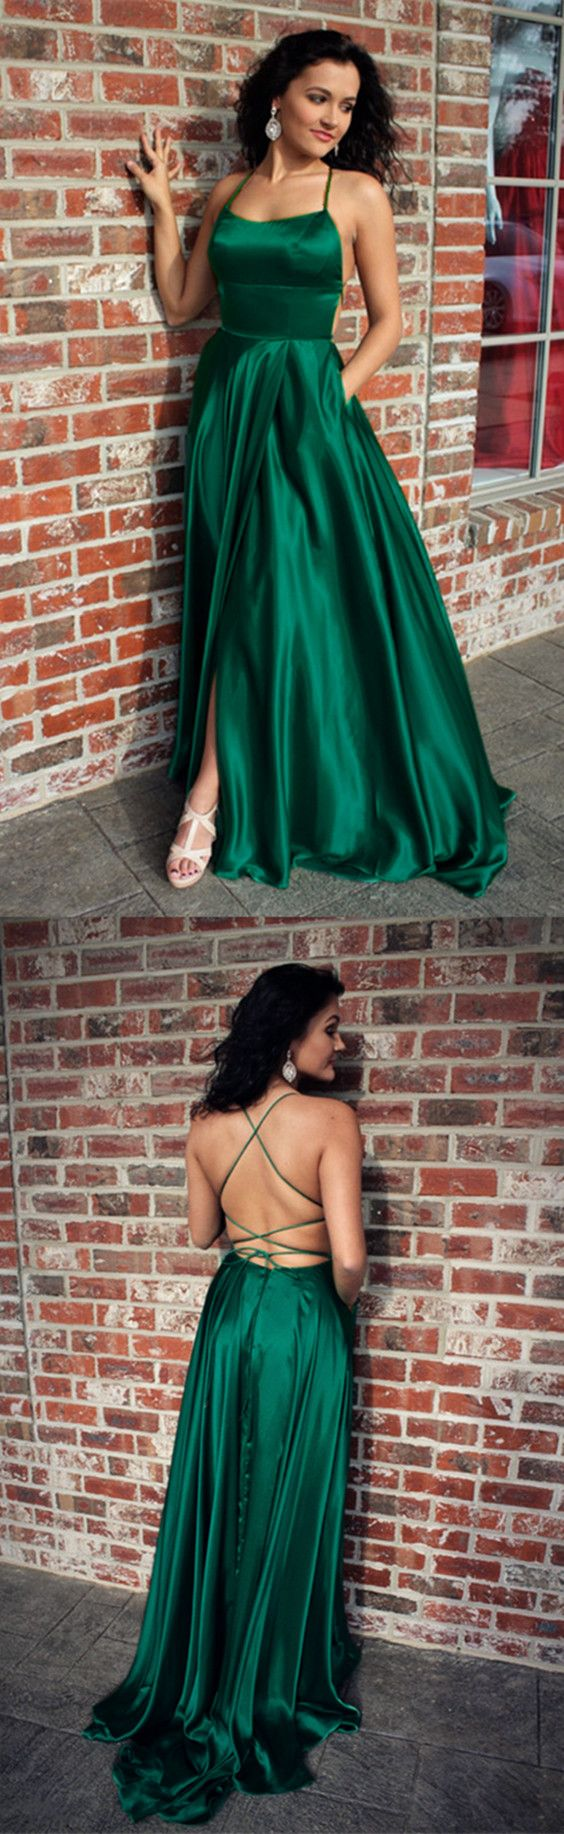 Dark Green Bridesmaid Dresses,Long Prom Dresses,Emerald Green Prom Dresses,Dark Green Evening Gowns